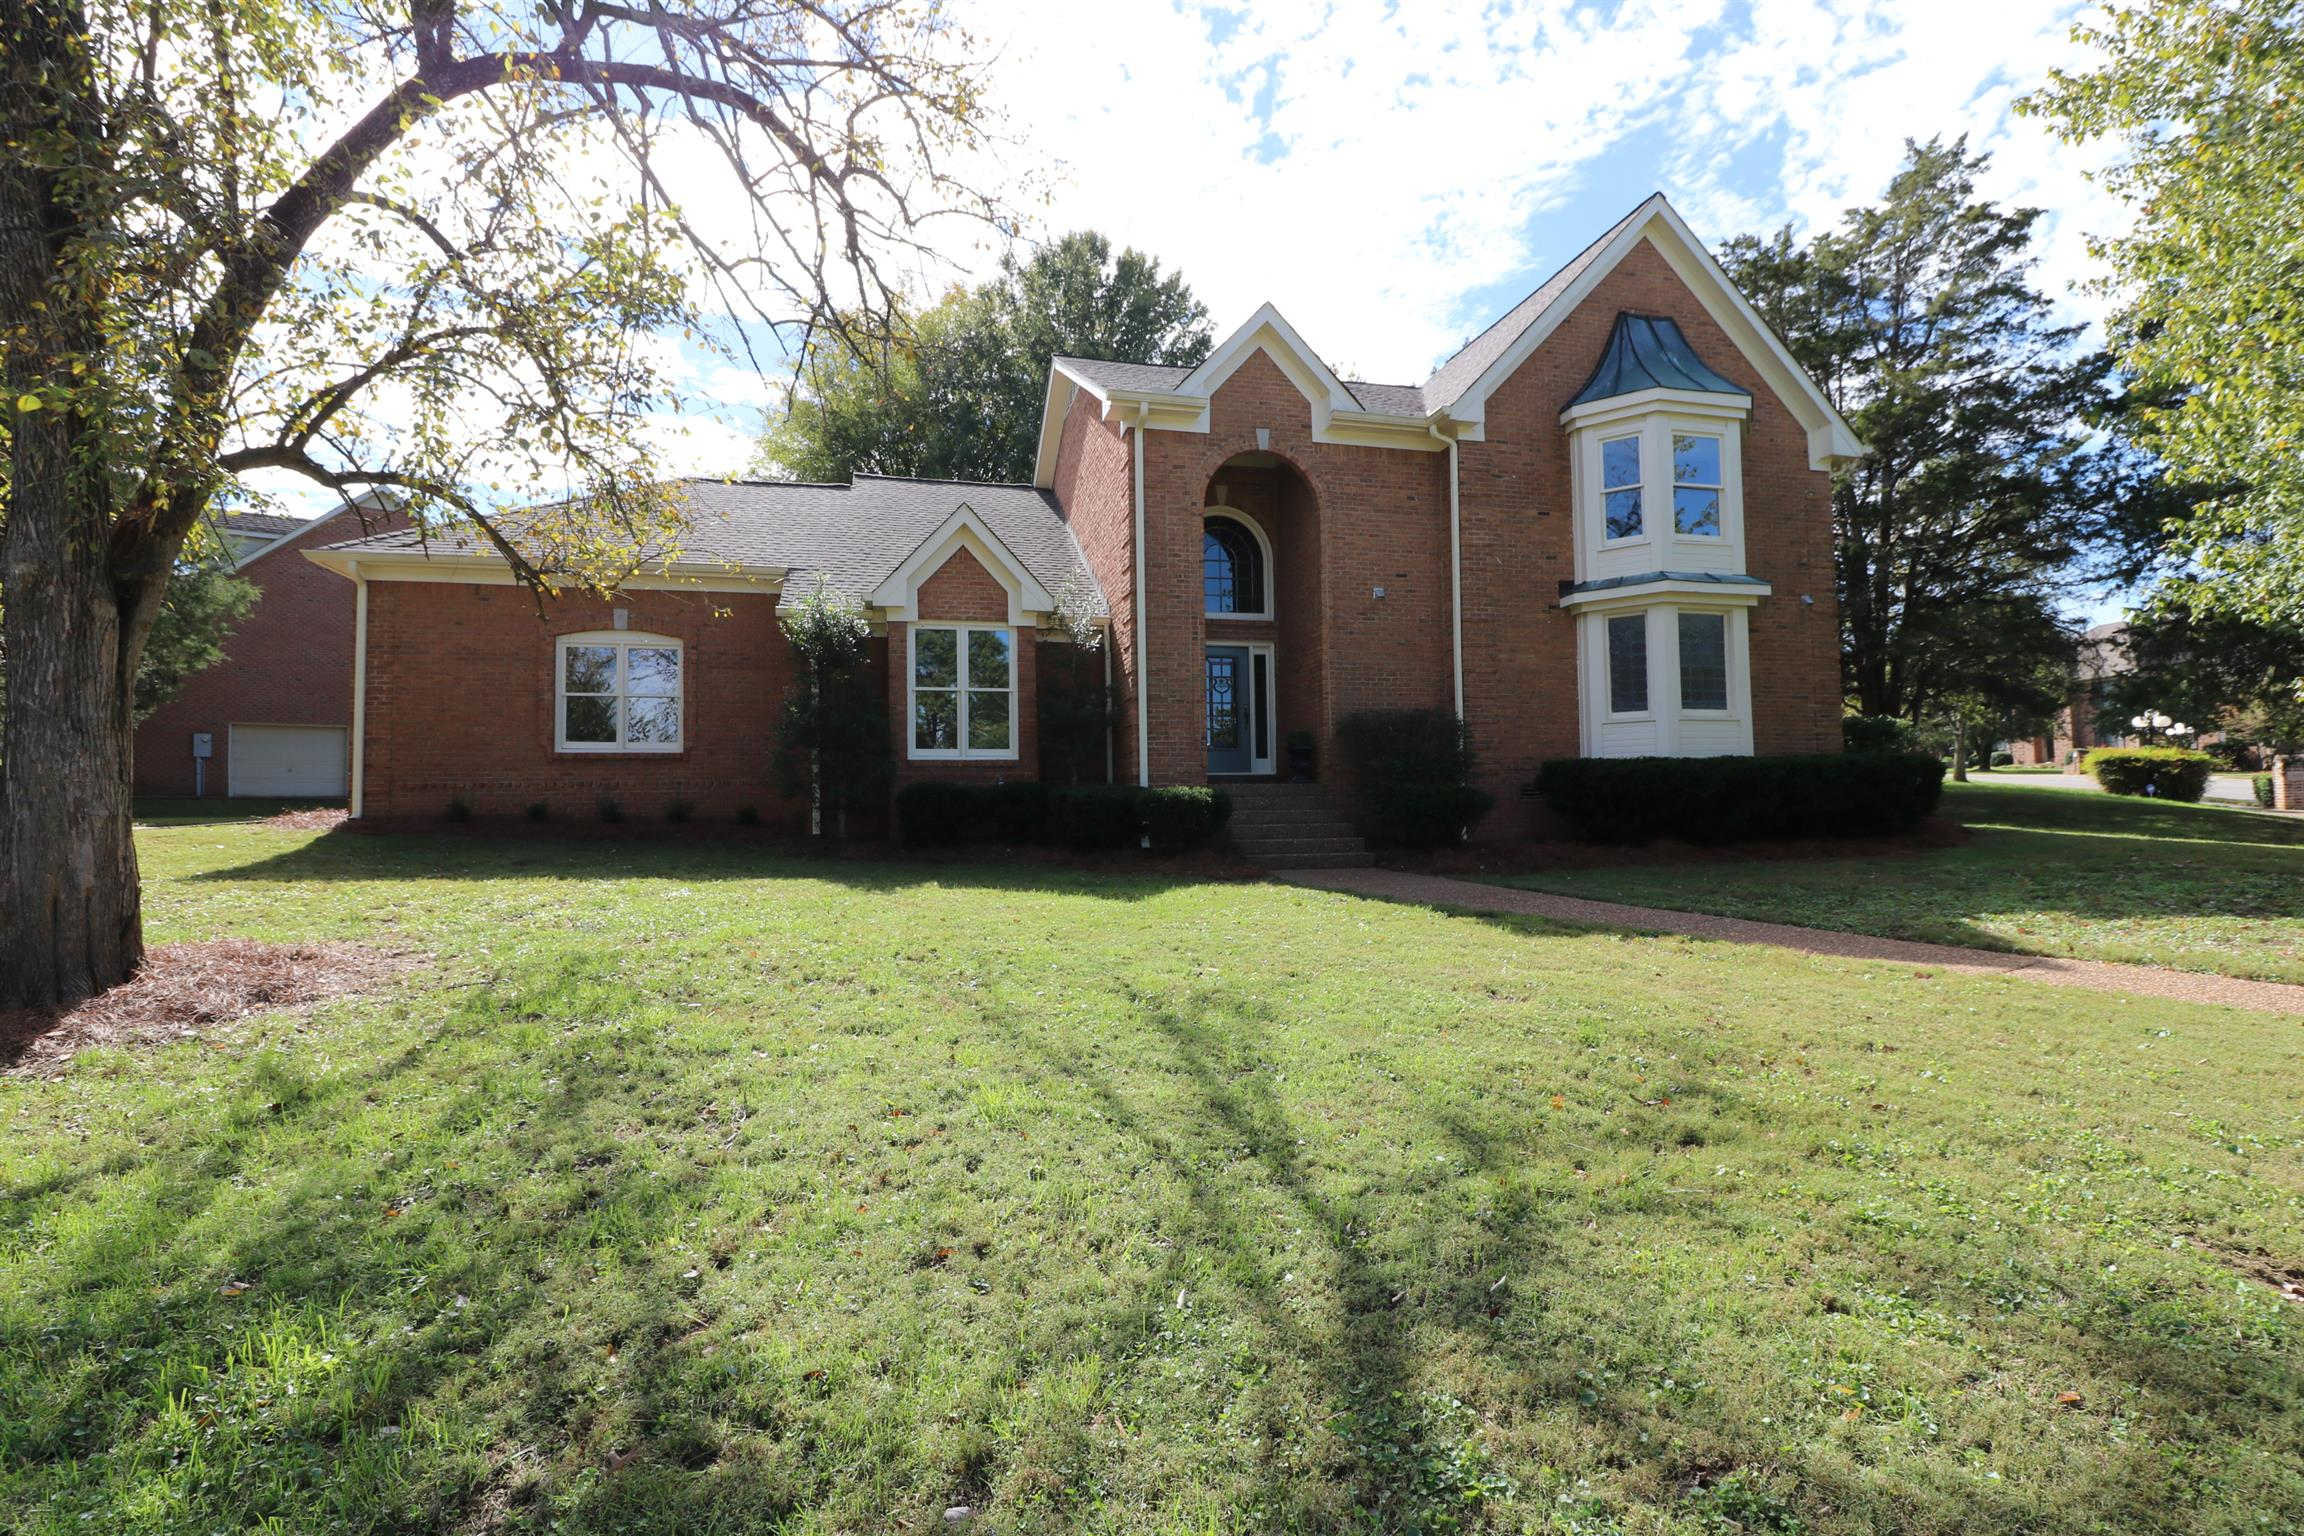 $469,900 - 3Br/3Ba -  for Sale in Brandywine Place, Old Hickory